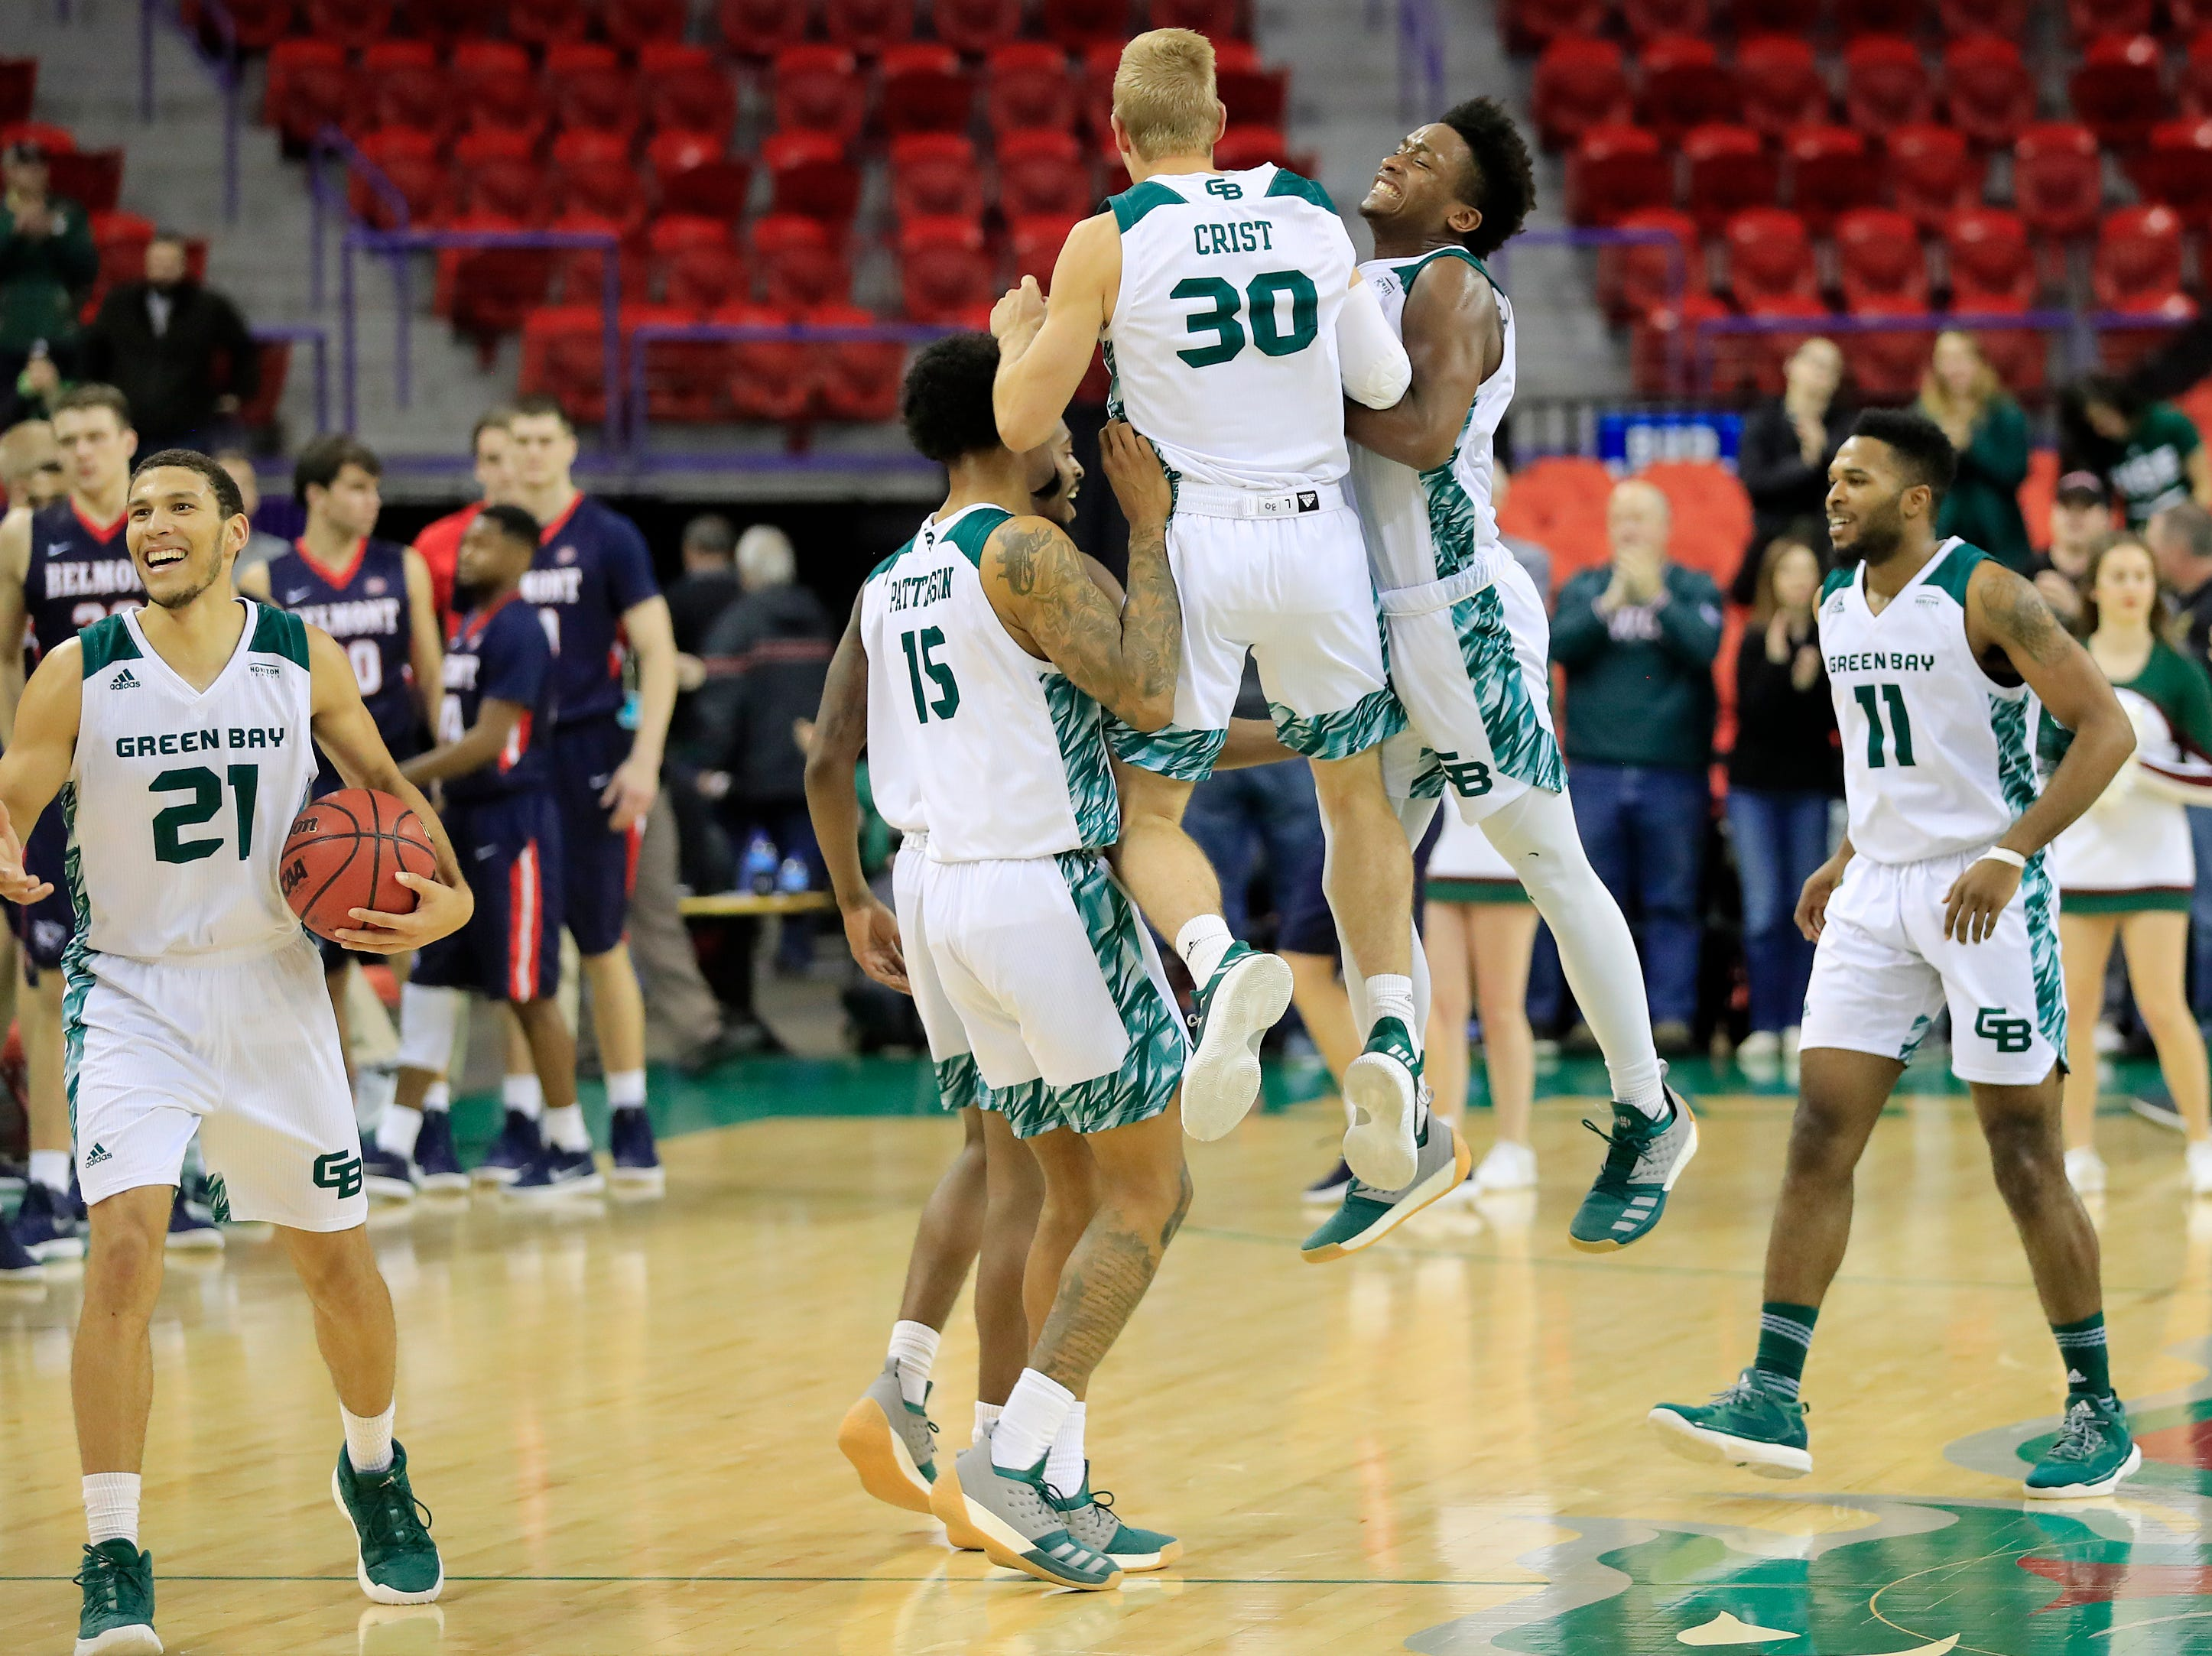 Green Bay Phoenix players celebrate after defeating the Belmont Bruins in a NCAA basketball game at the Resch Center on Saturday, December 1, 2018 in Ashwaubenon, Wis.